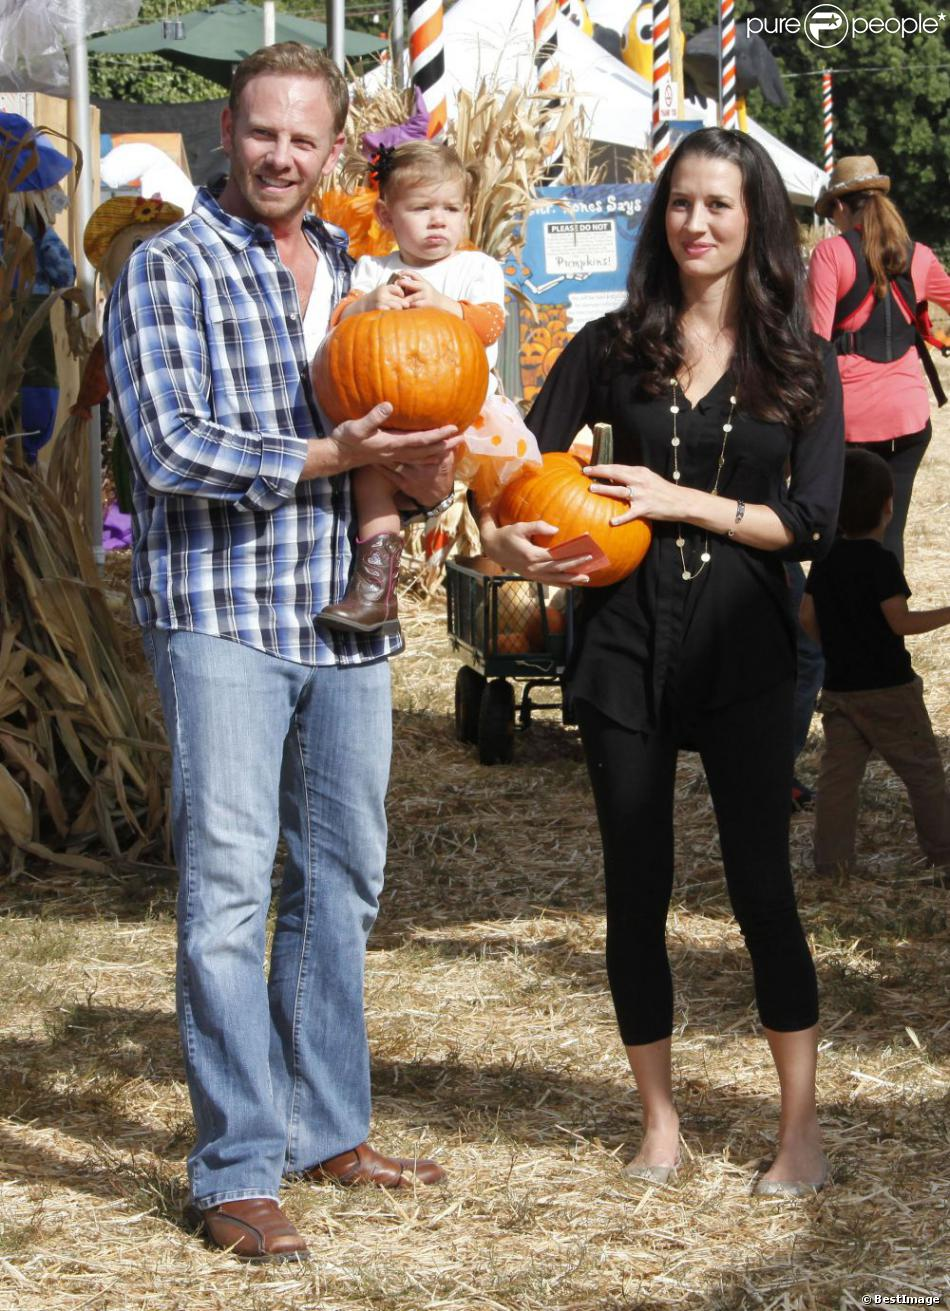 Ian Ziering, sa femme Erin et leur fille Mia à West Hollywood le 6 octobre 2012 chez Mr. Bones Pumpkin Patch